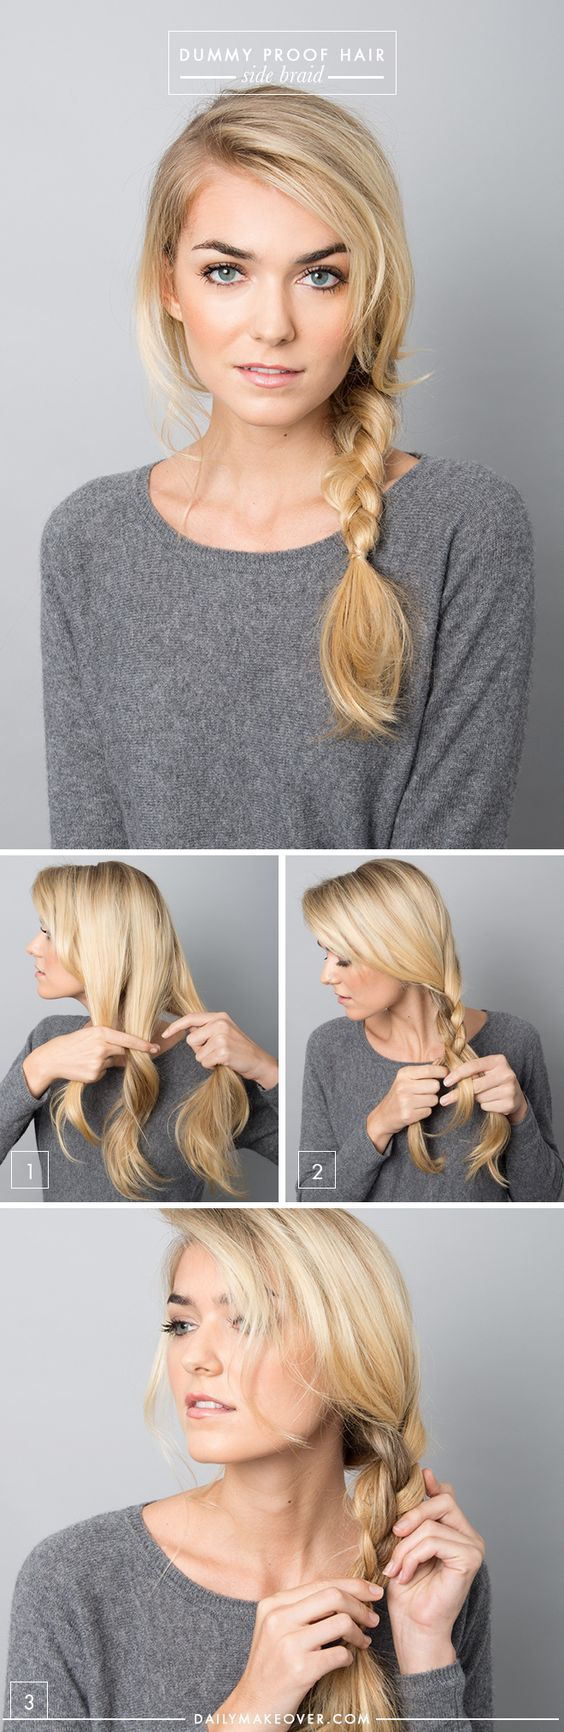 5 Dummy Proof Hairstyles That Everyone Can Master